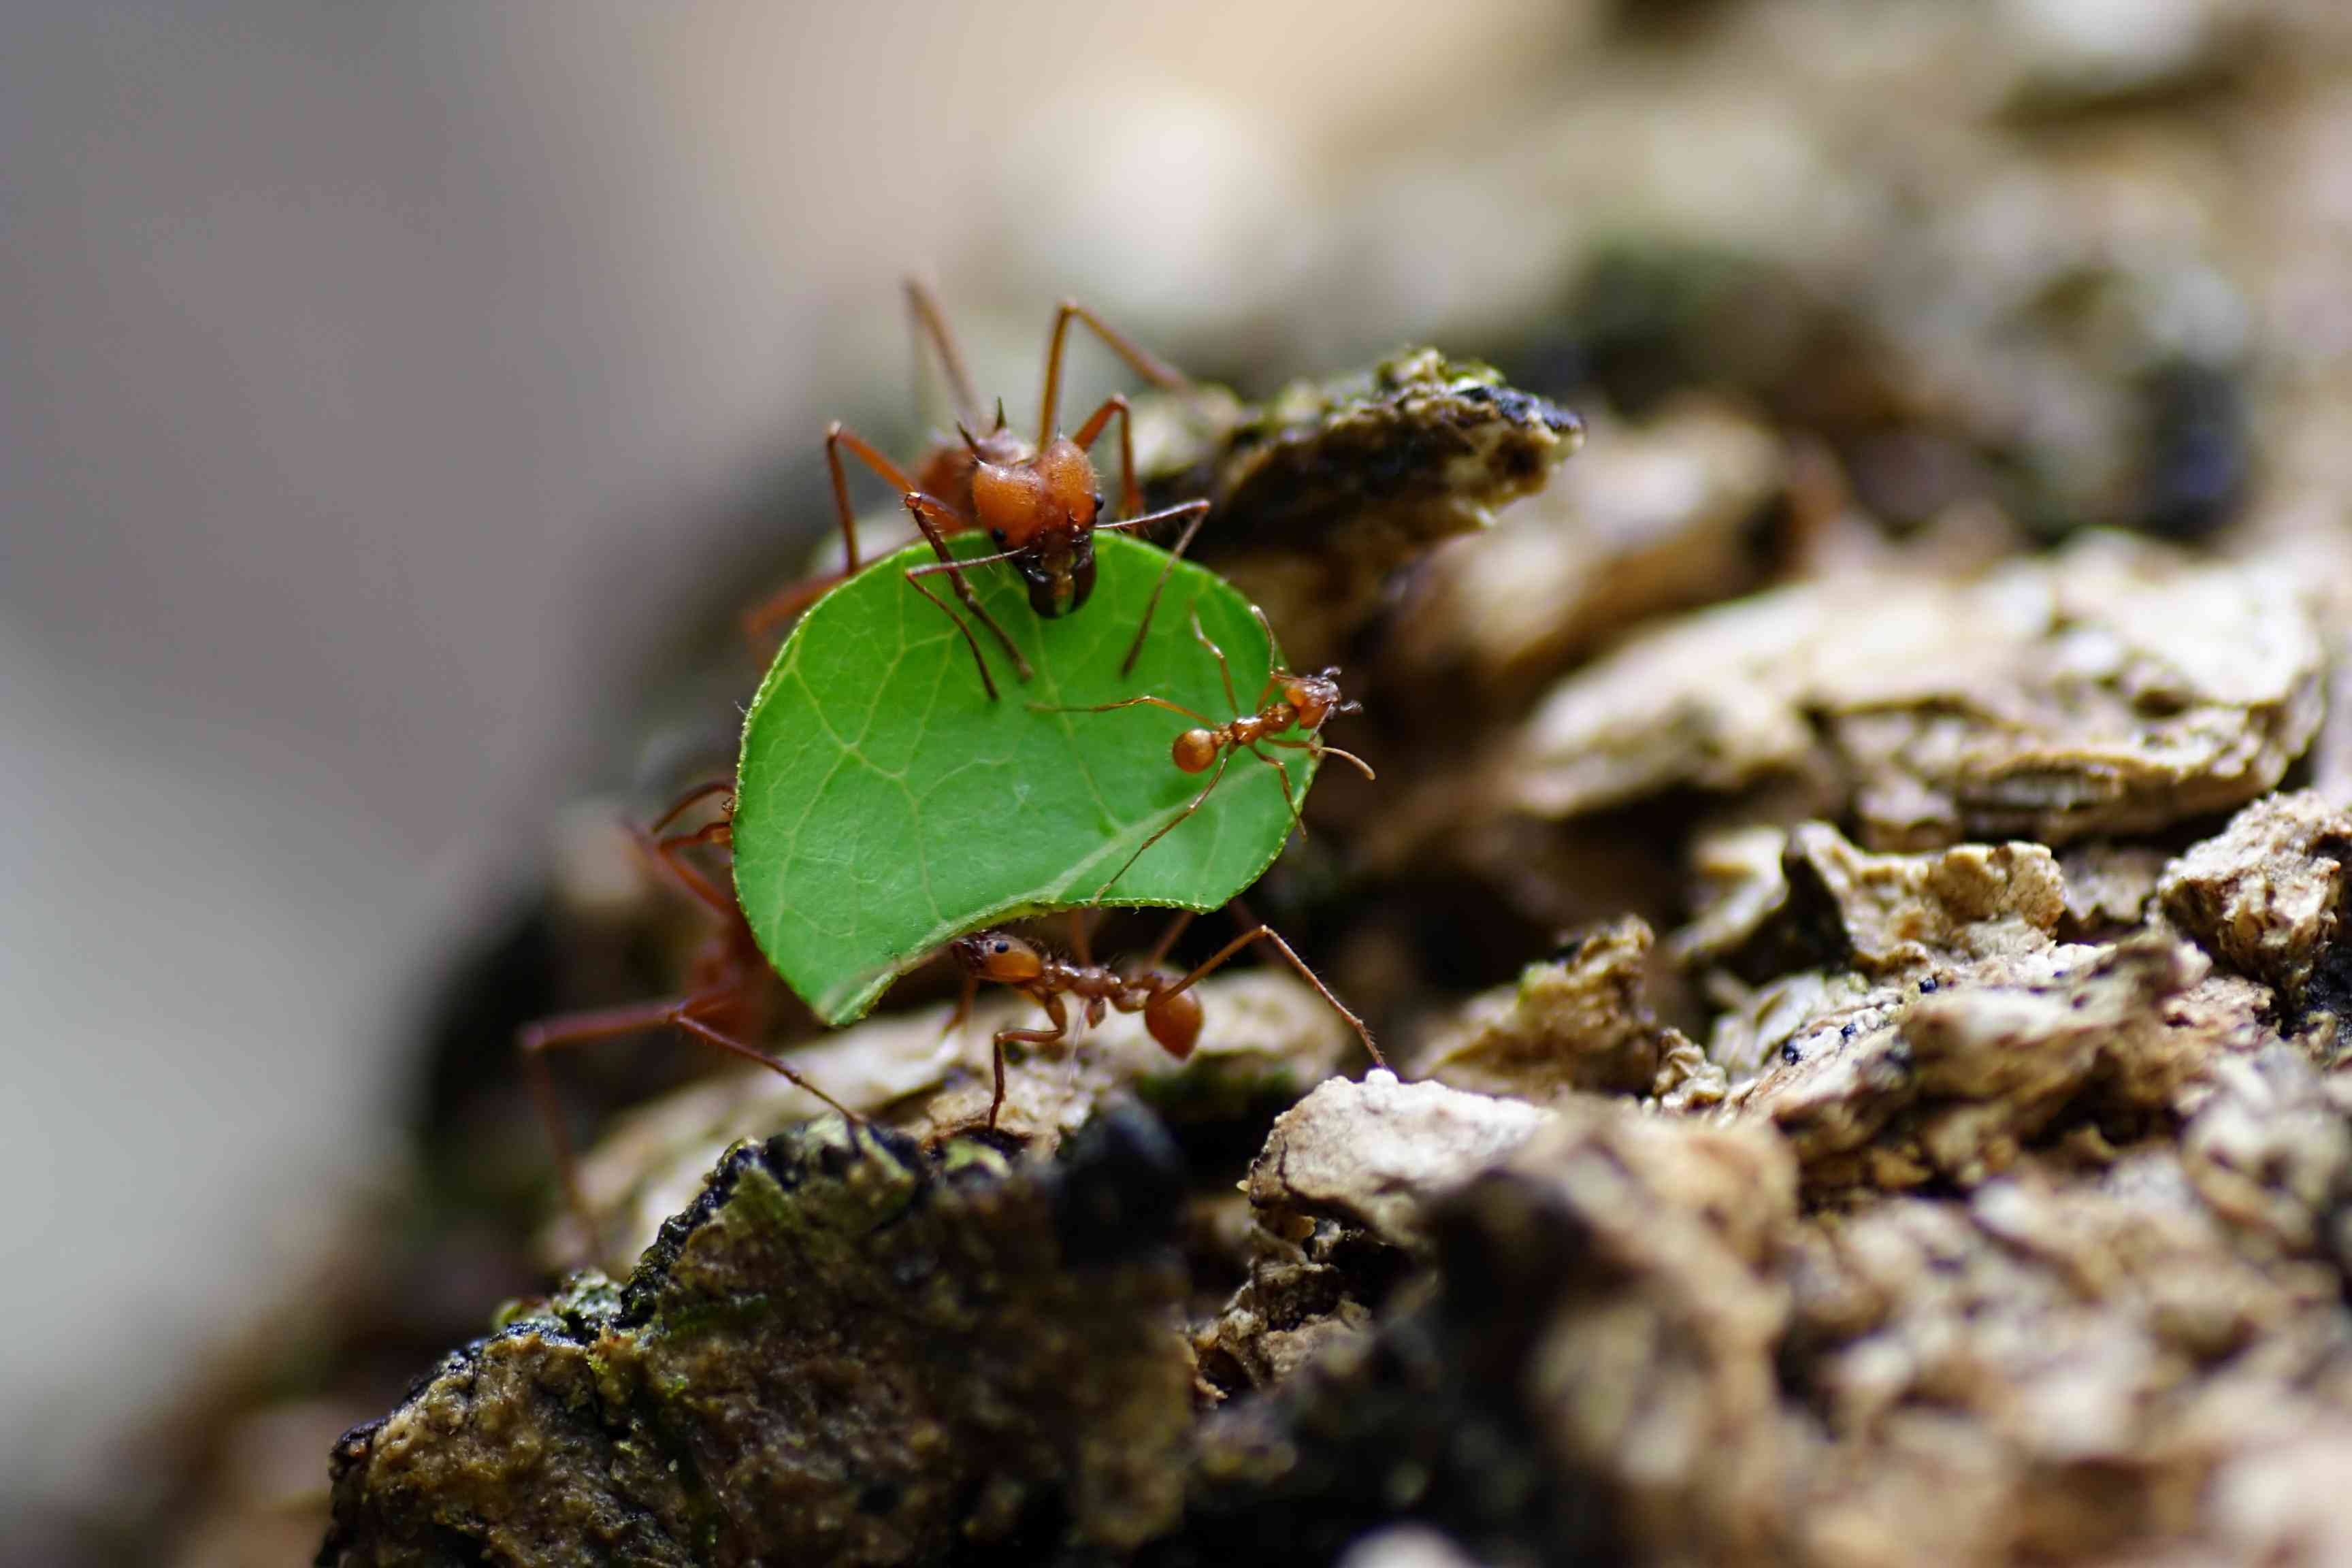 Leaf cutter ant carrying a leaf and other ants